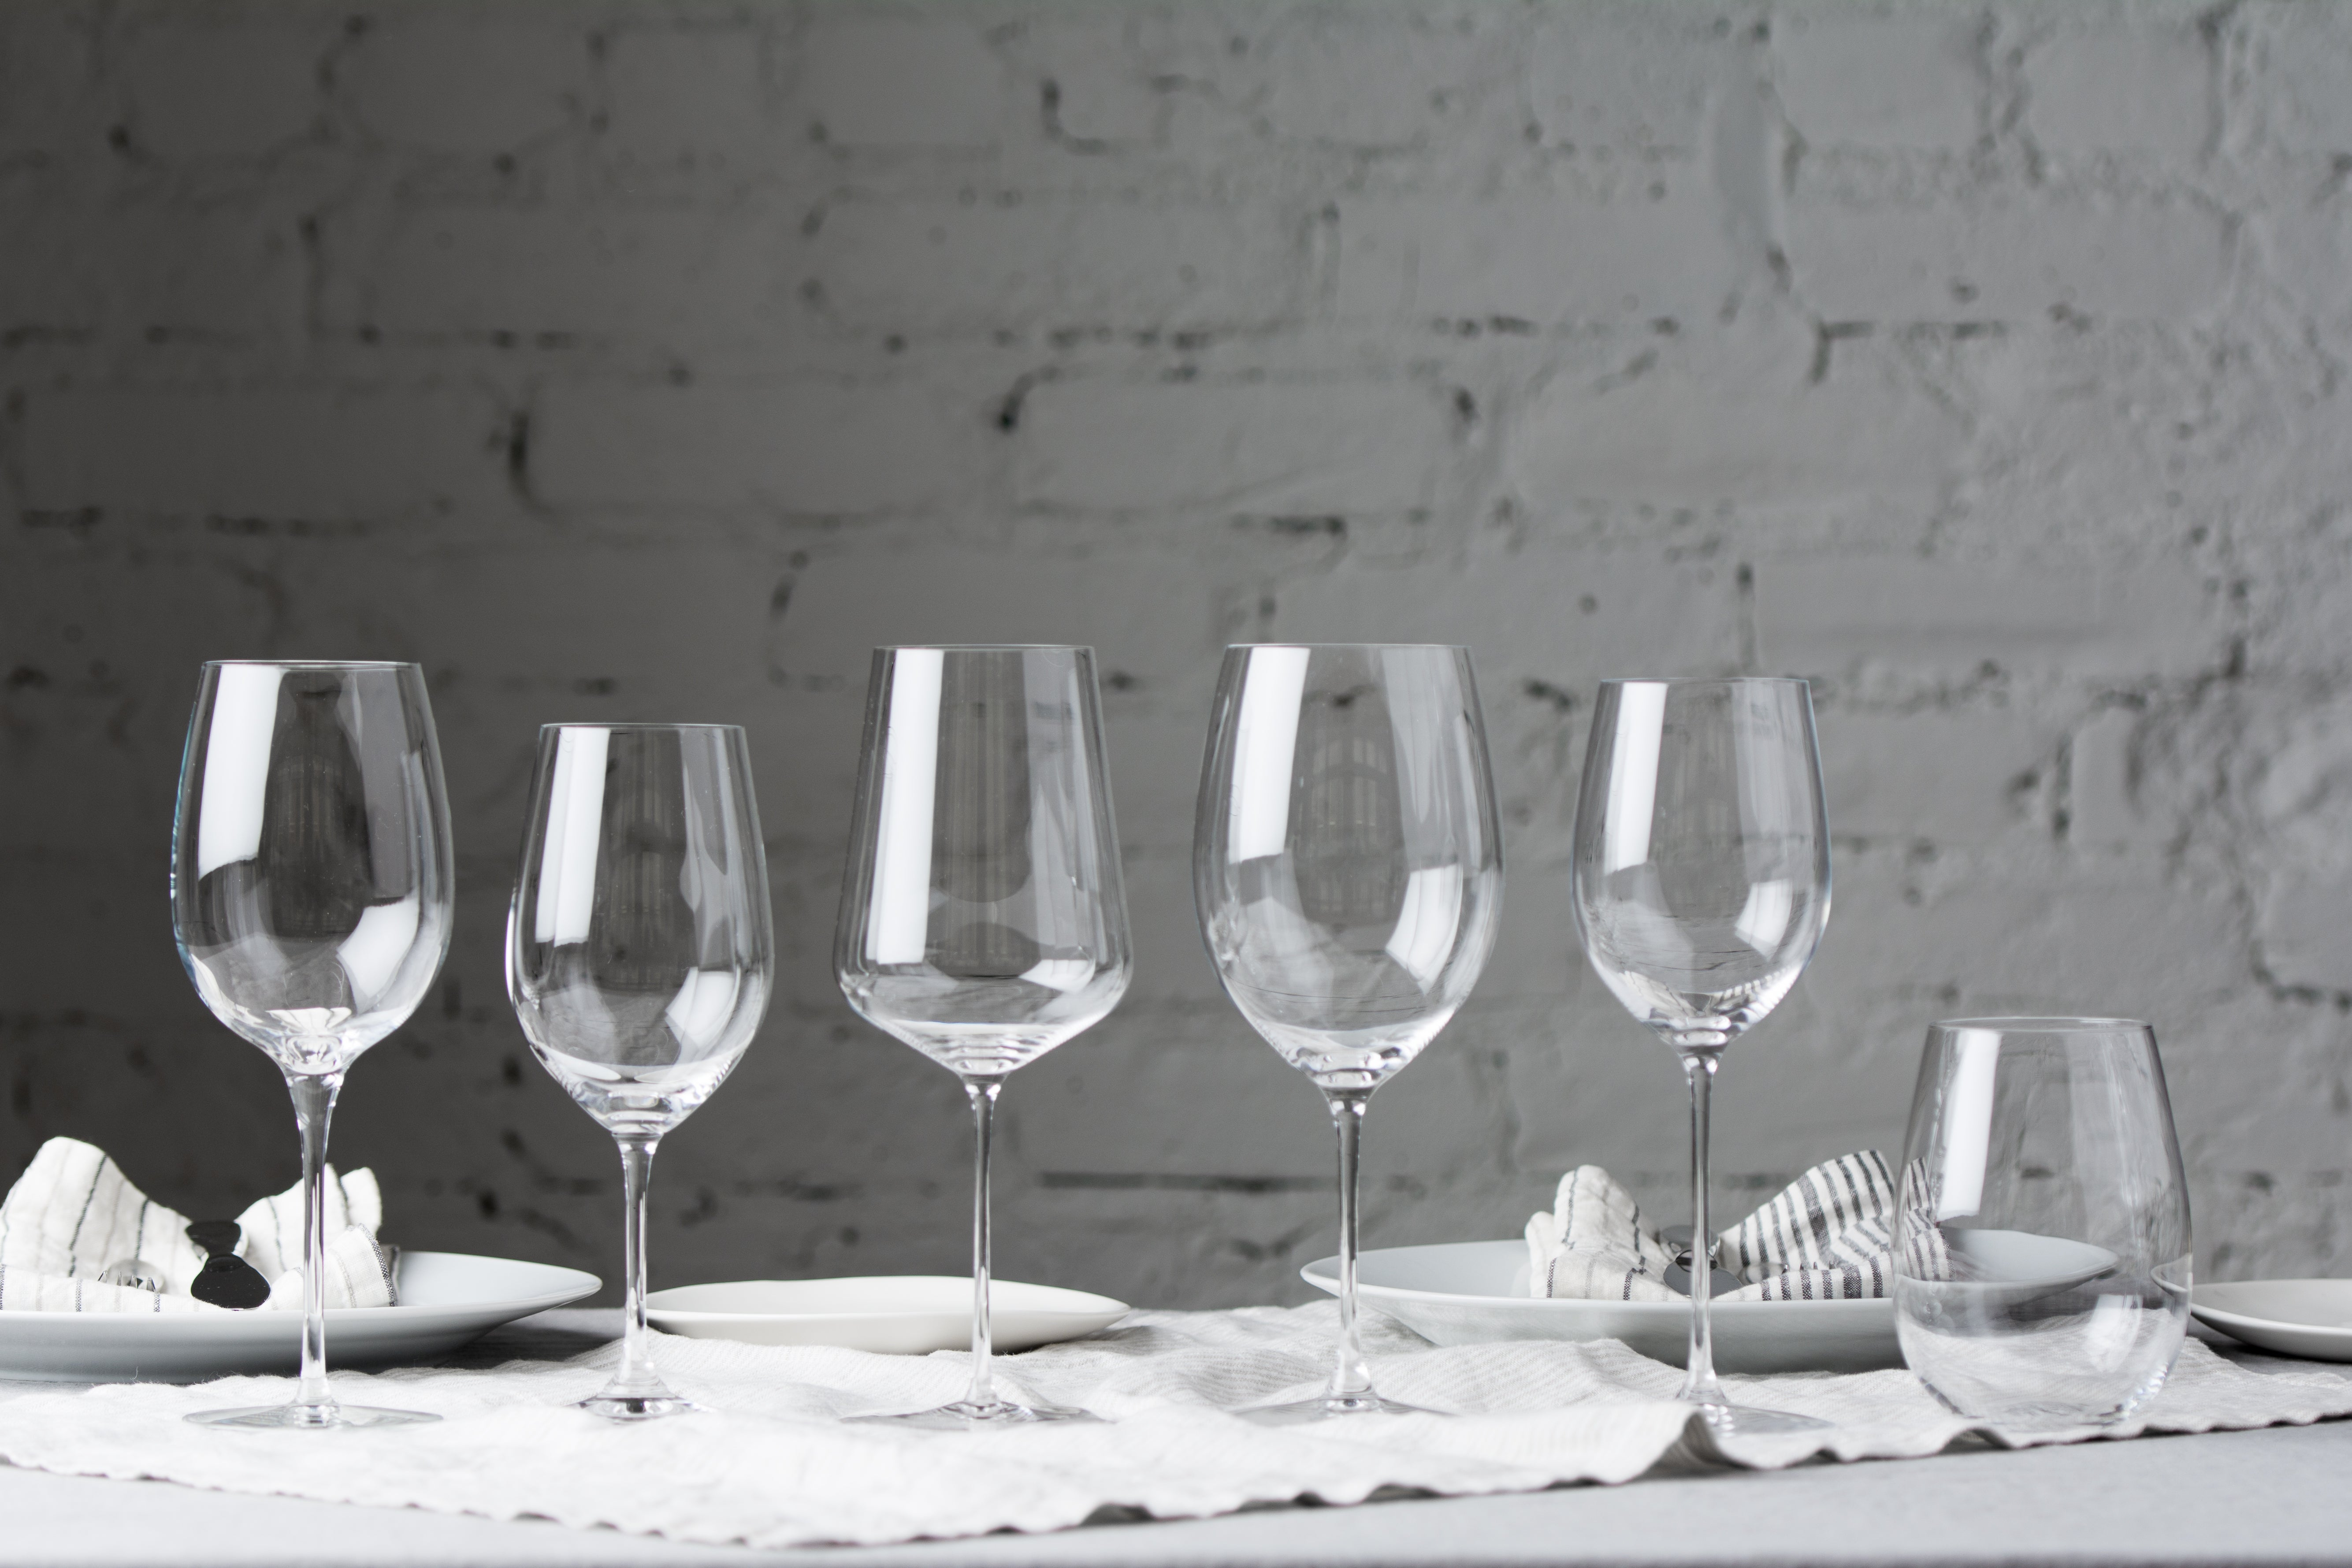 lined up wine glasses